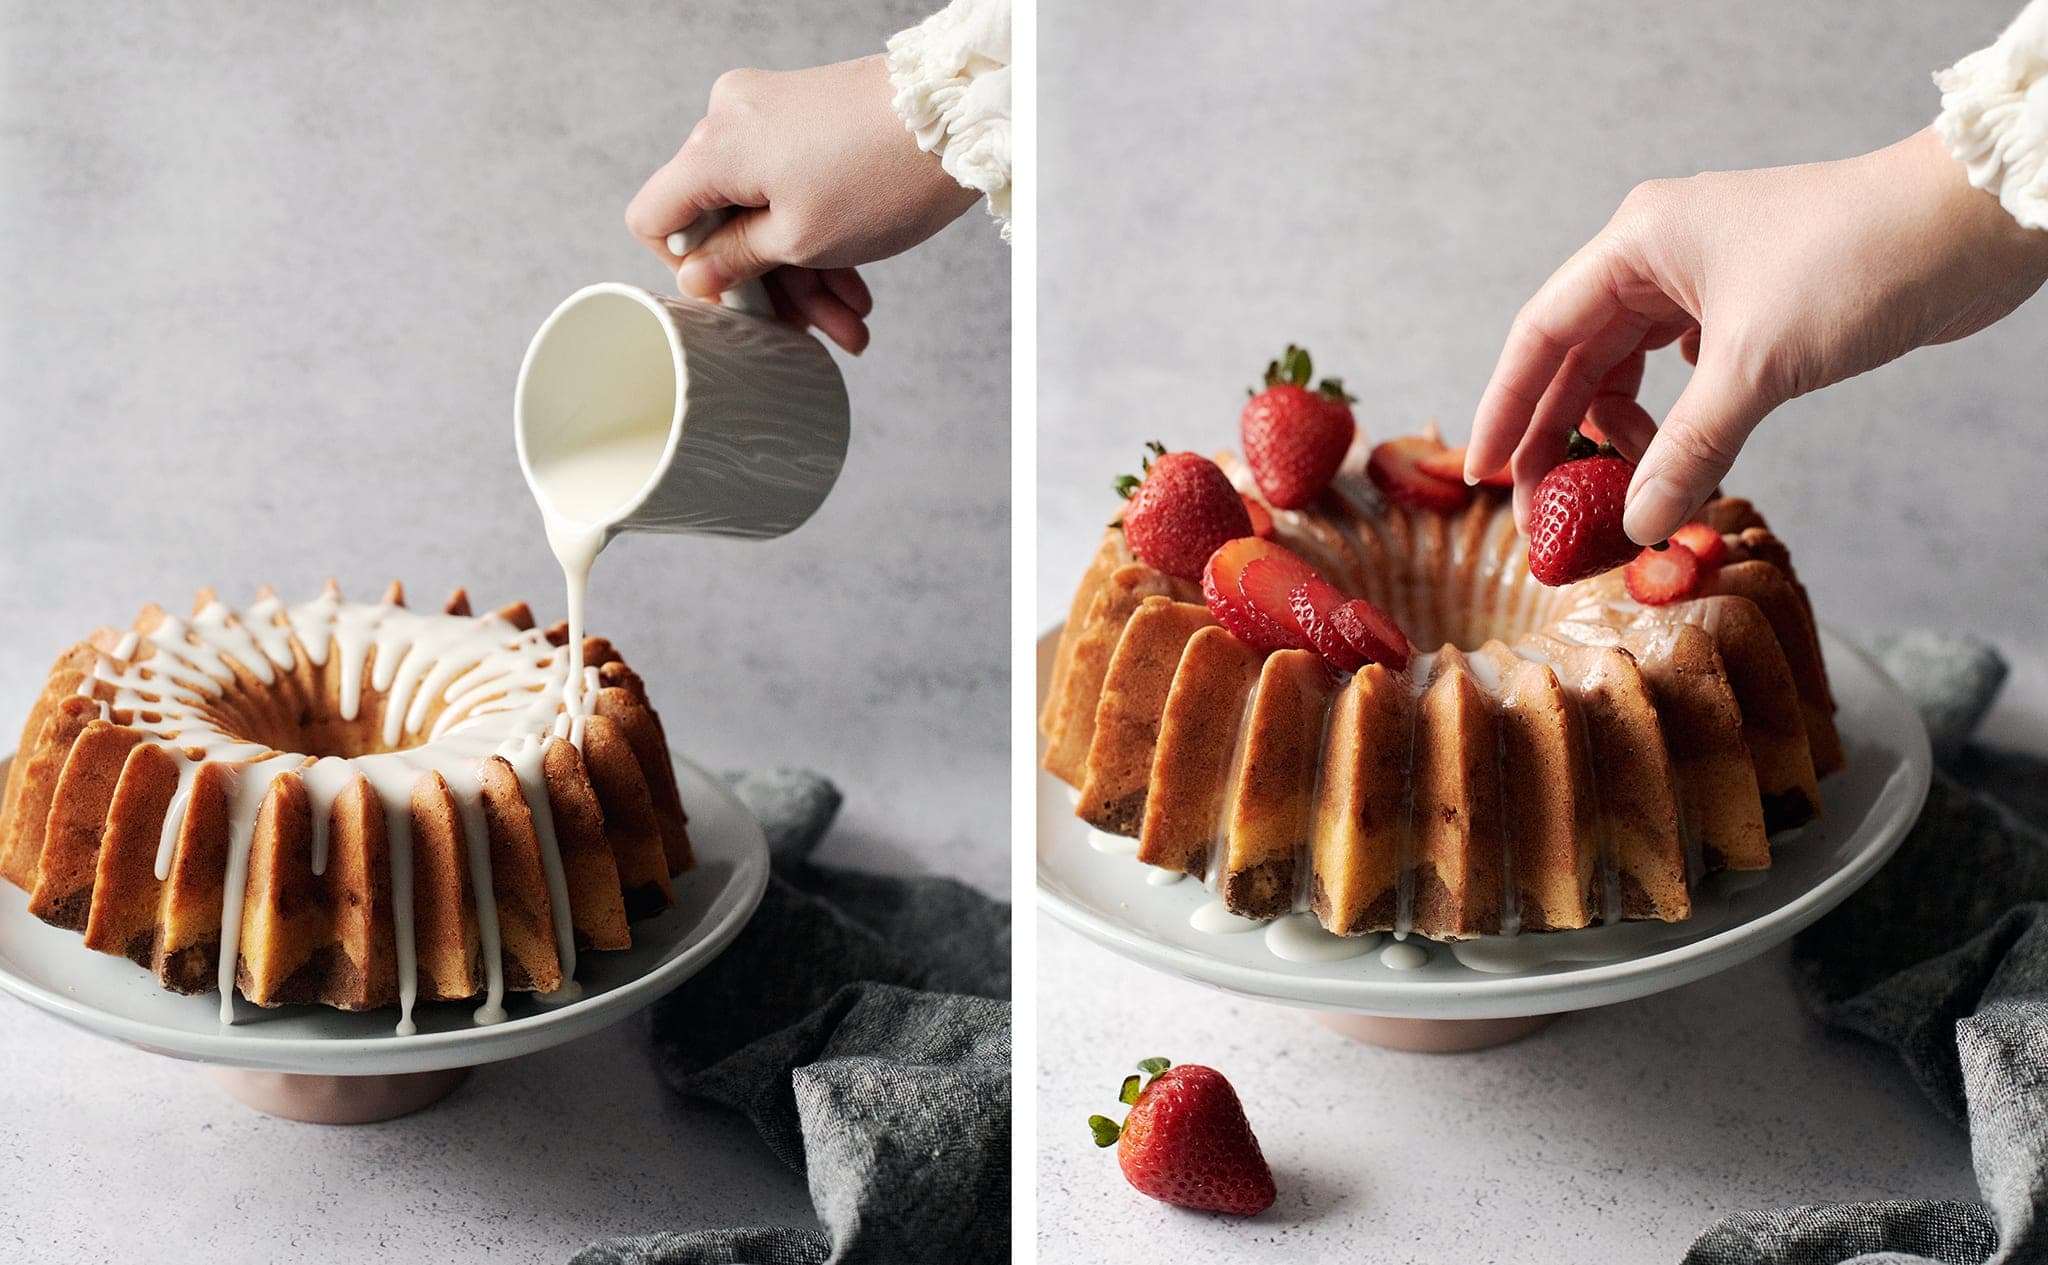 Pouring glaze and putting strawberries on bundt cake